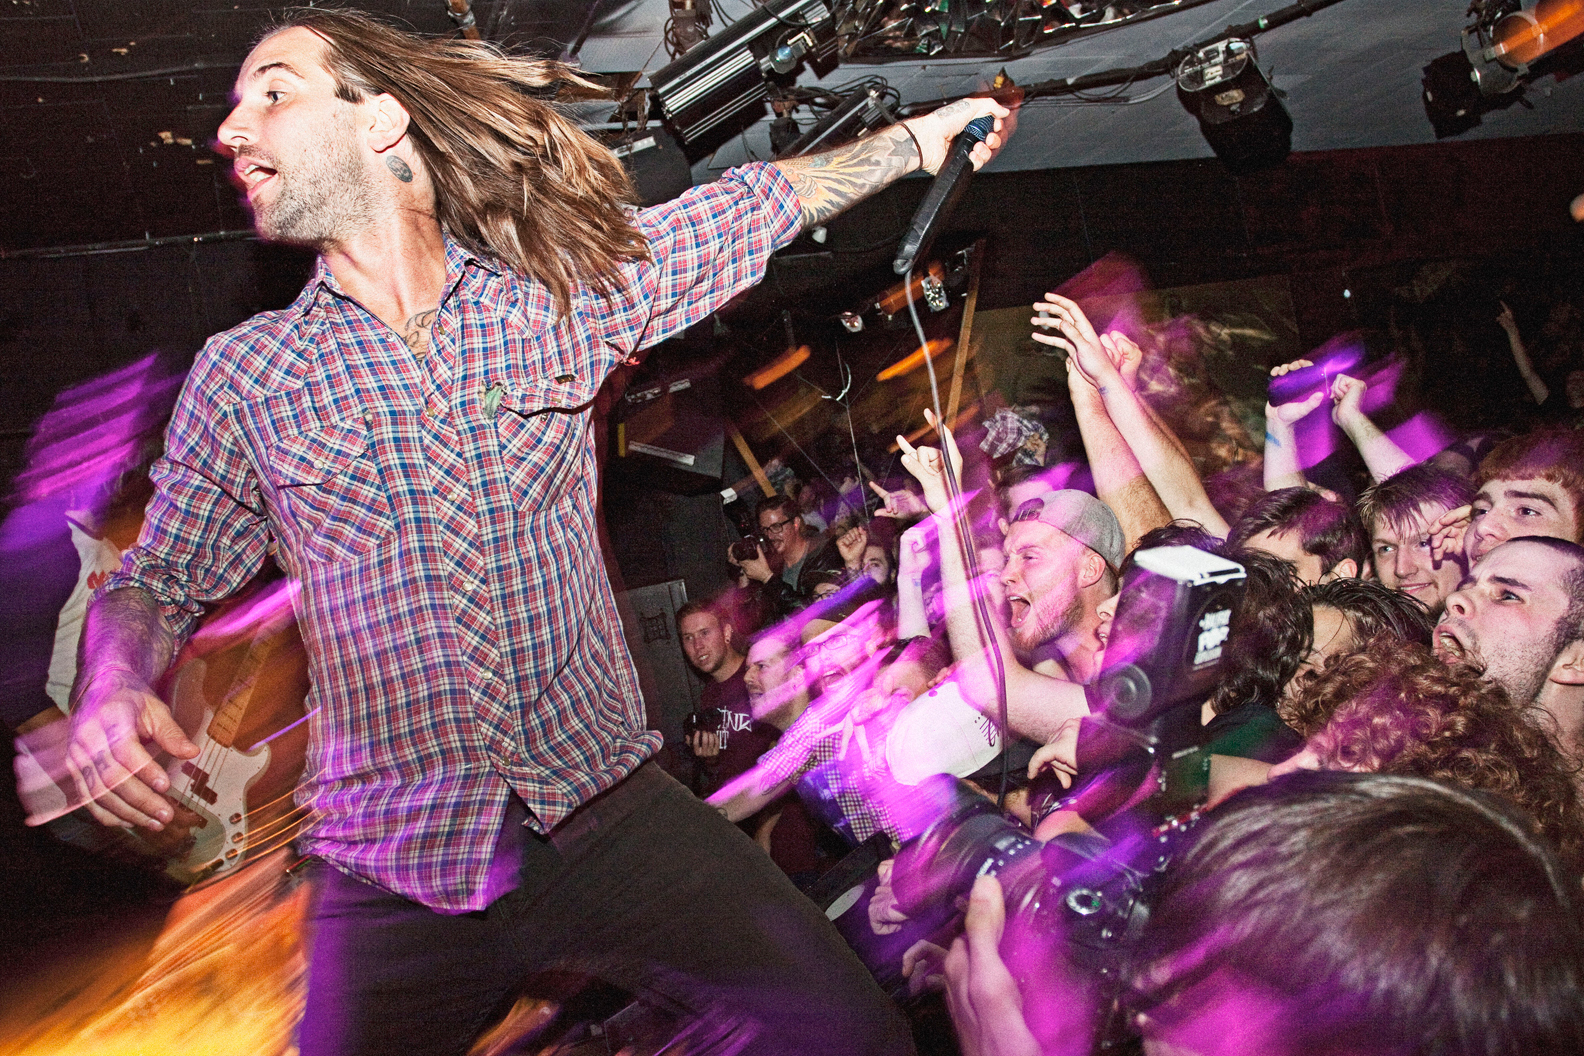 Every Time I Die